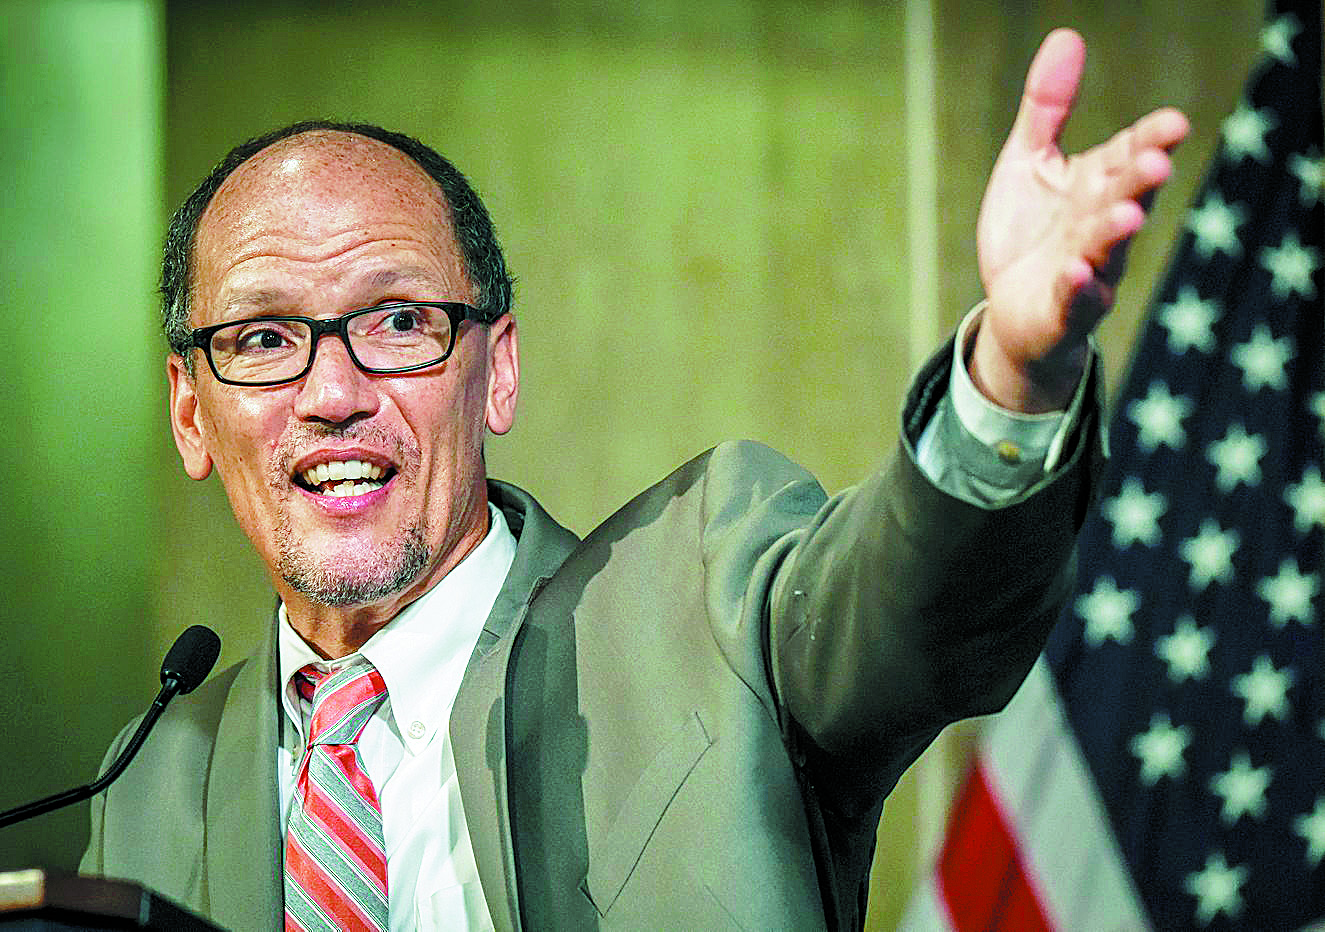 Labor Secretary Thomas Perez, who is said to be on the short list of Hillary Clinton's running mate. (Bill O'Leary/Washington Post)